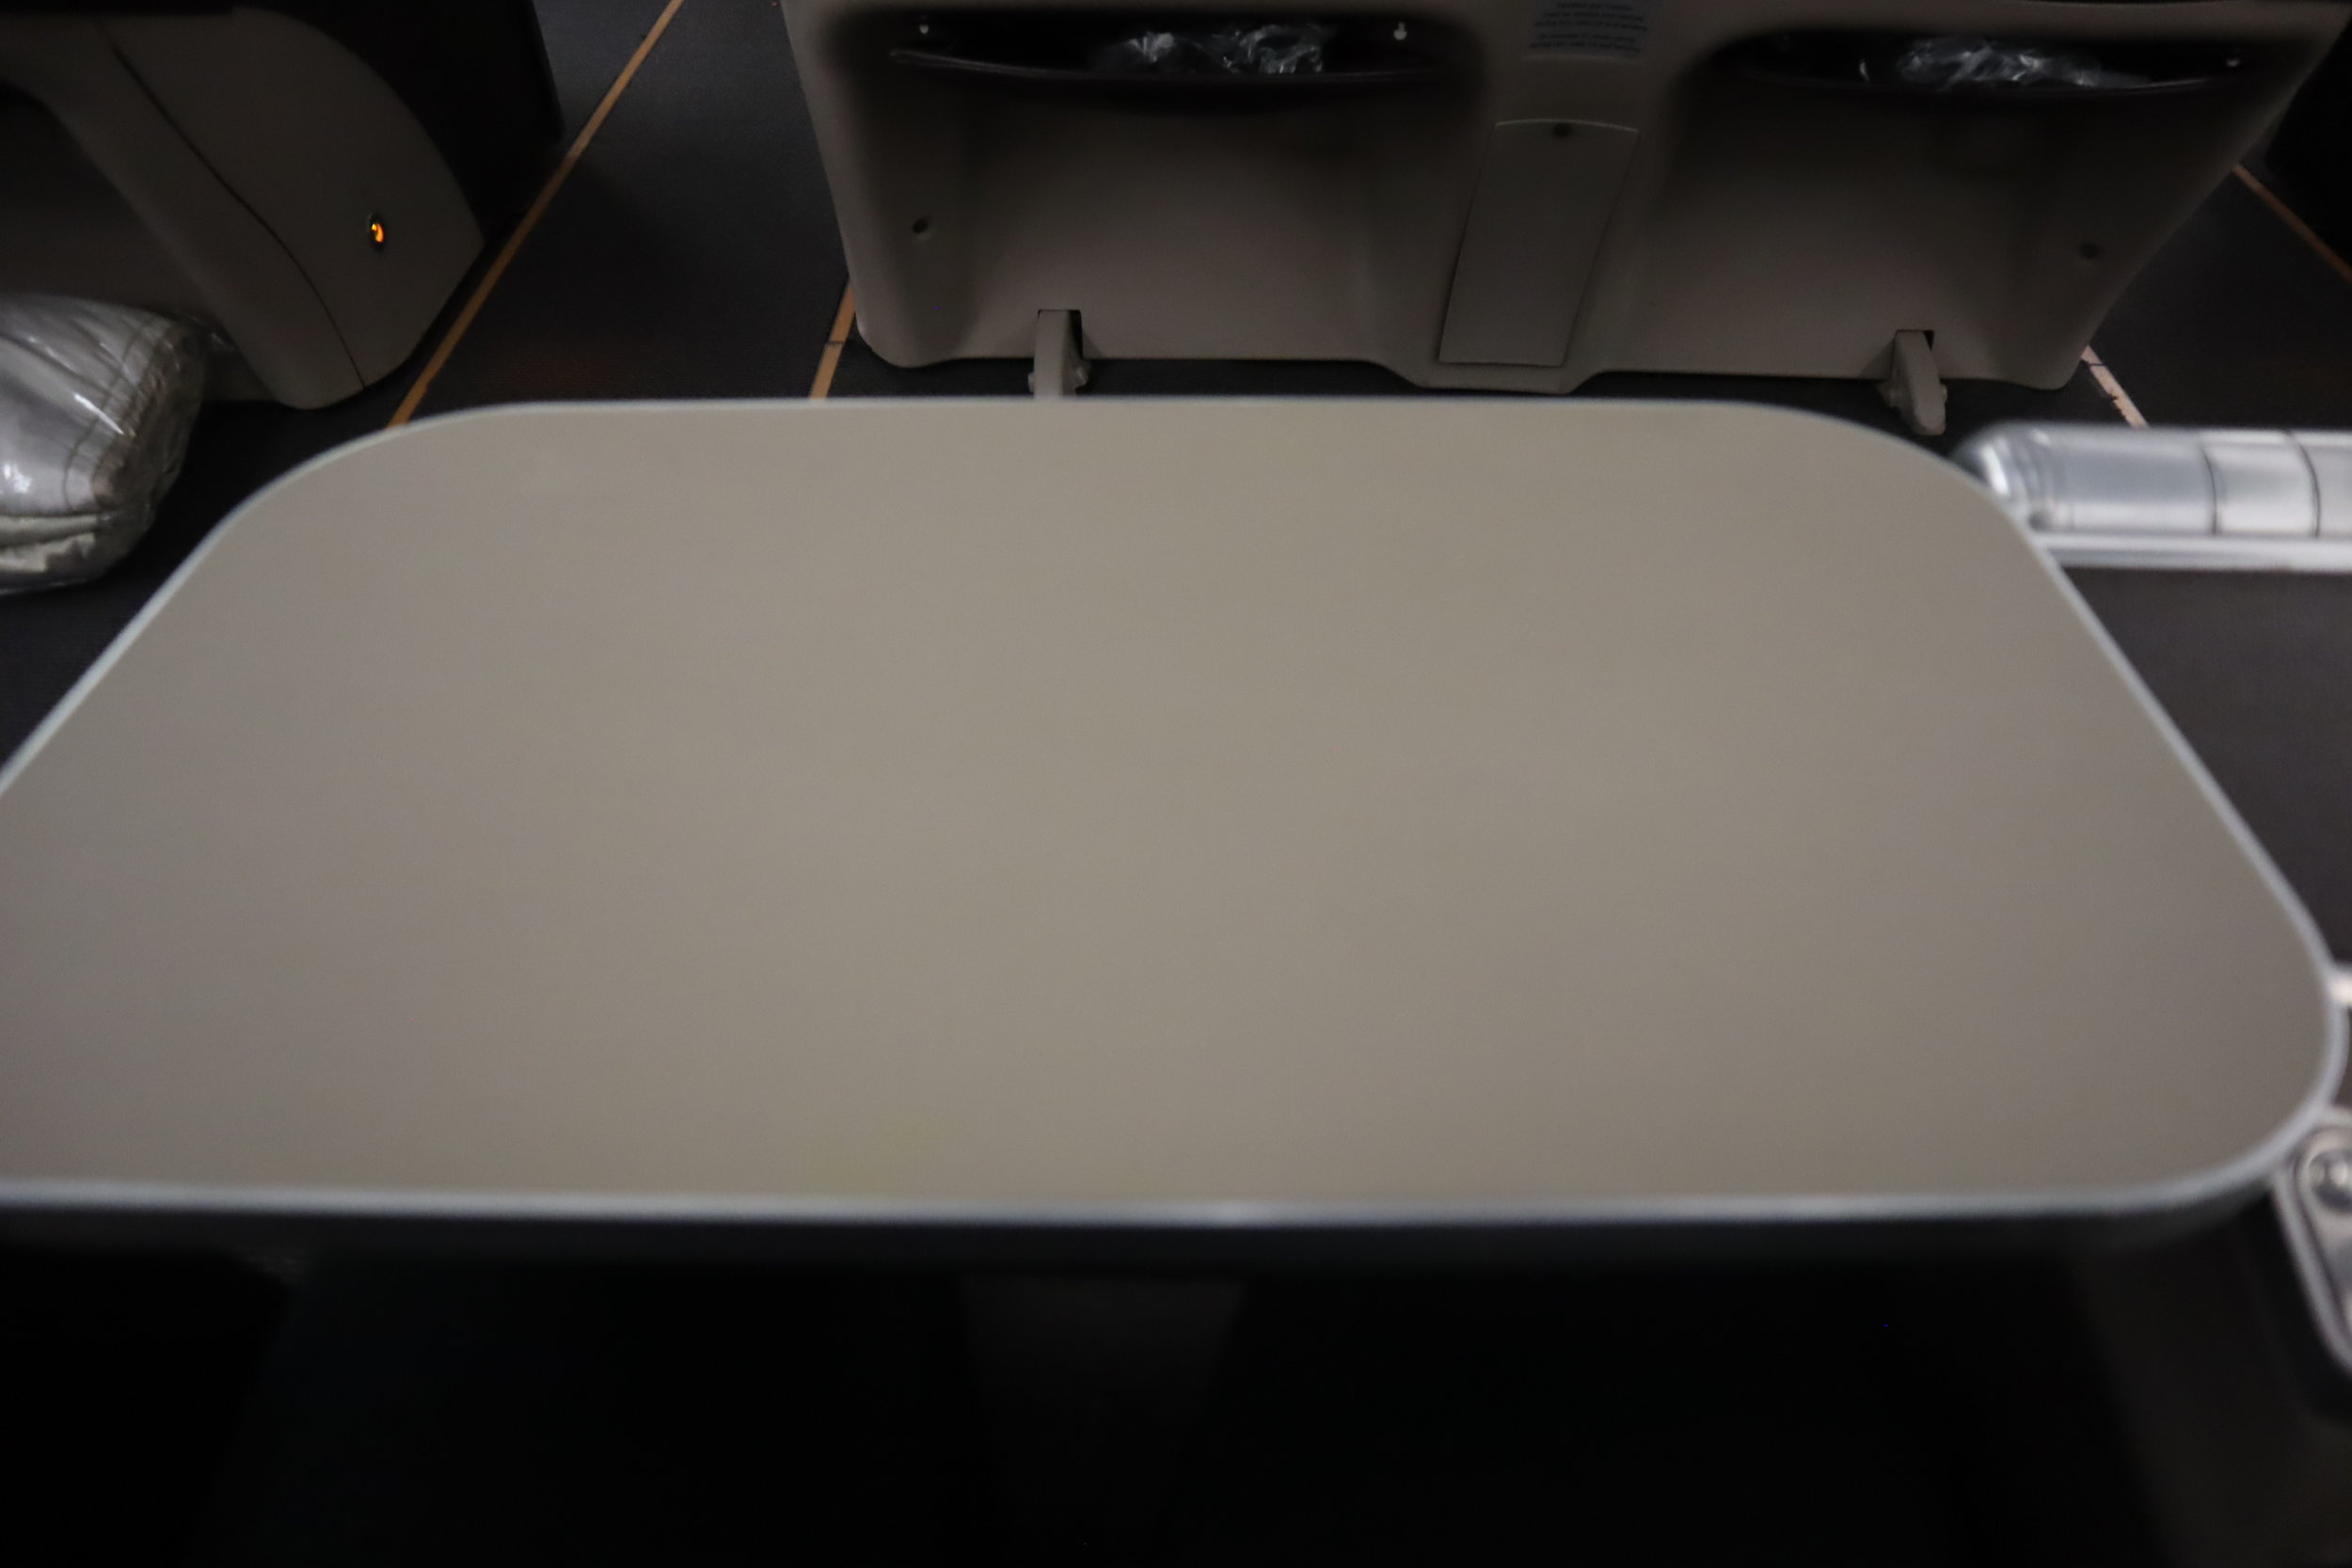 South African Airways business class – Tray table